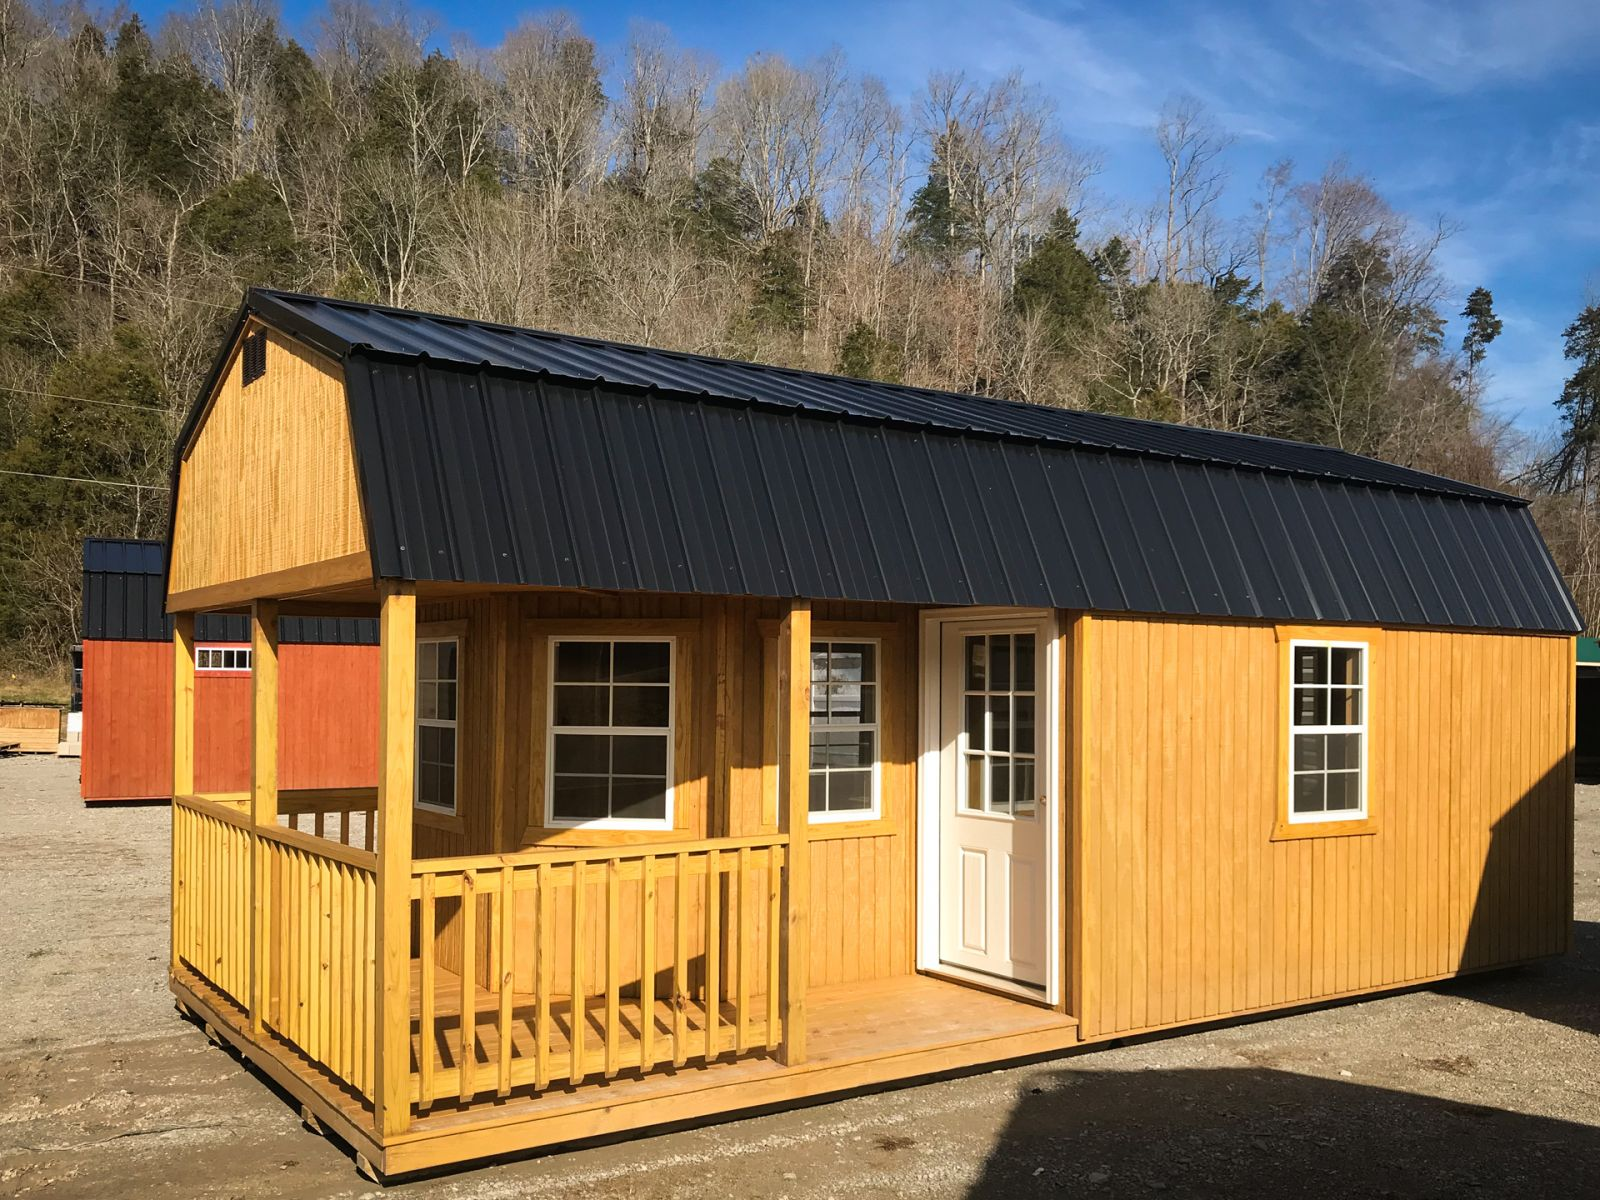 A prefab cabin shed for sale in Nashville, TN